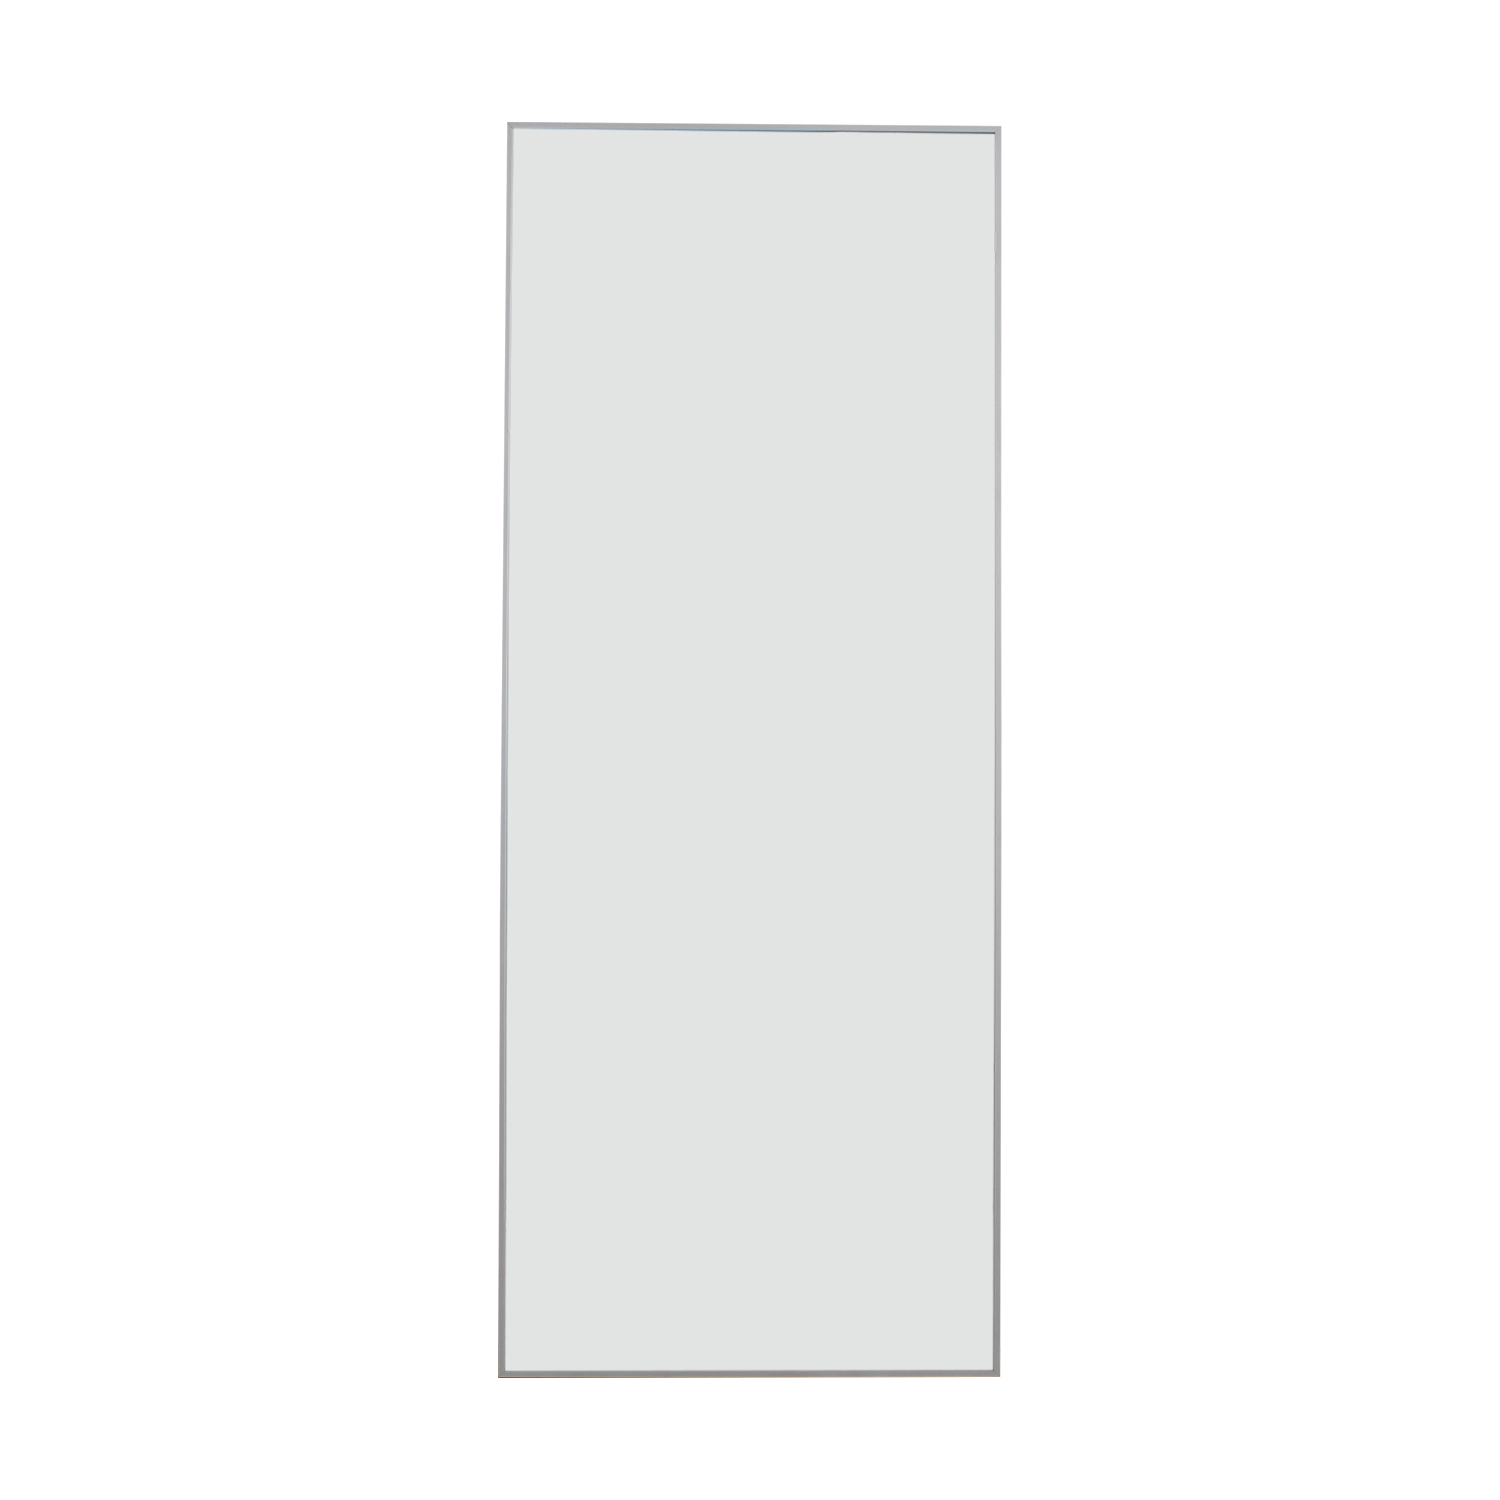 buy Floor Mirror with Chrome Border Mirrors